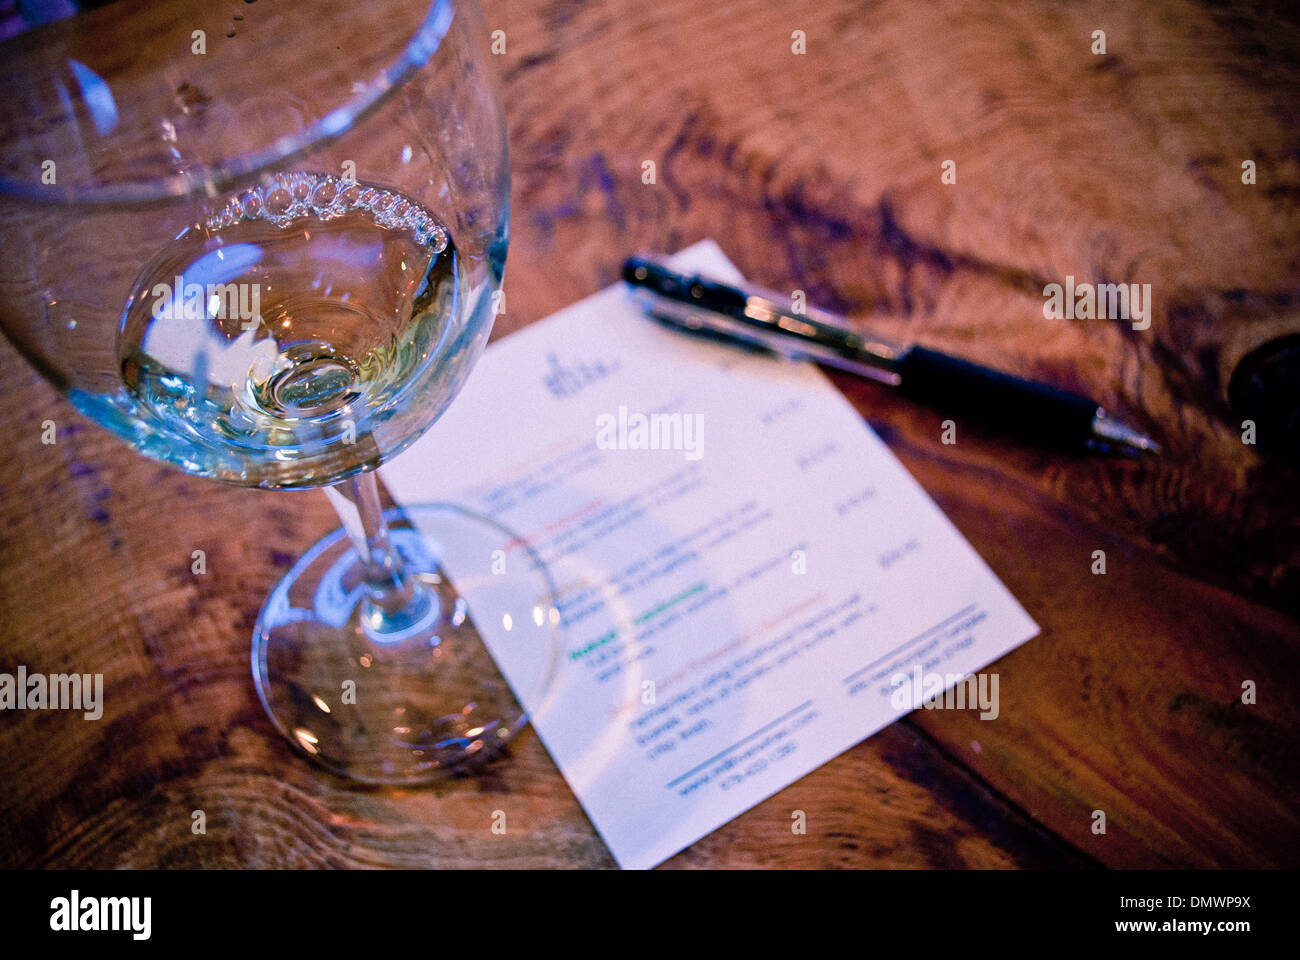 At the wine tasting: glass of wine, sheet of paper and a pen. - Stock Image